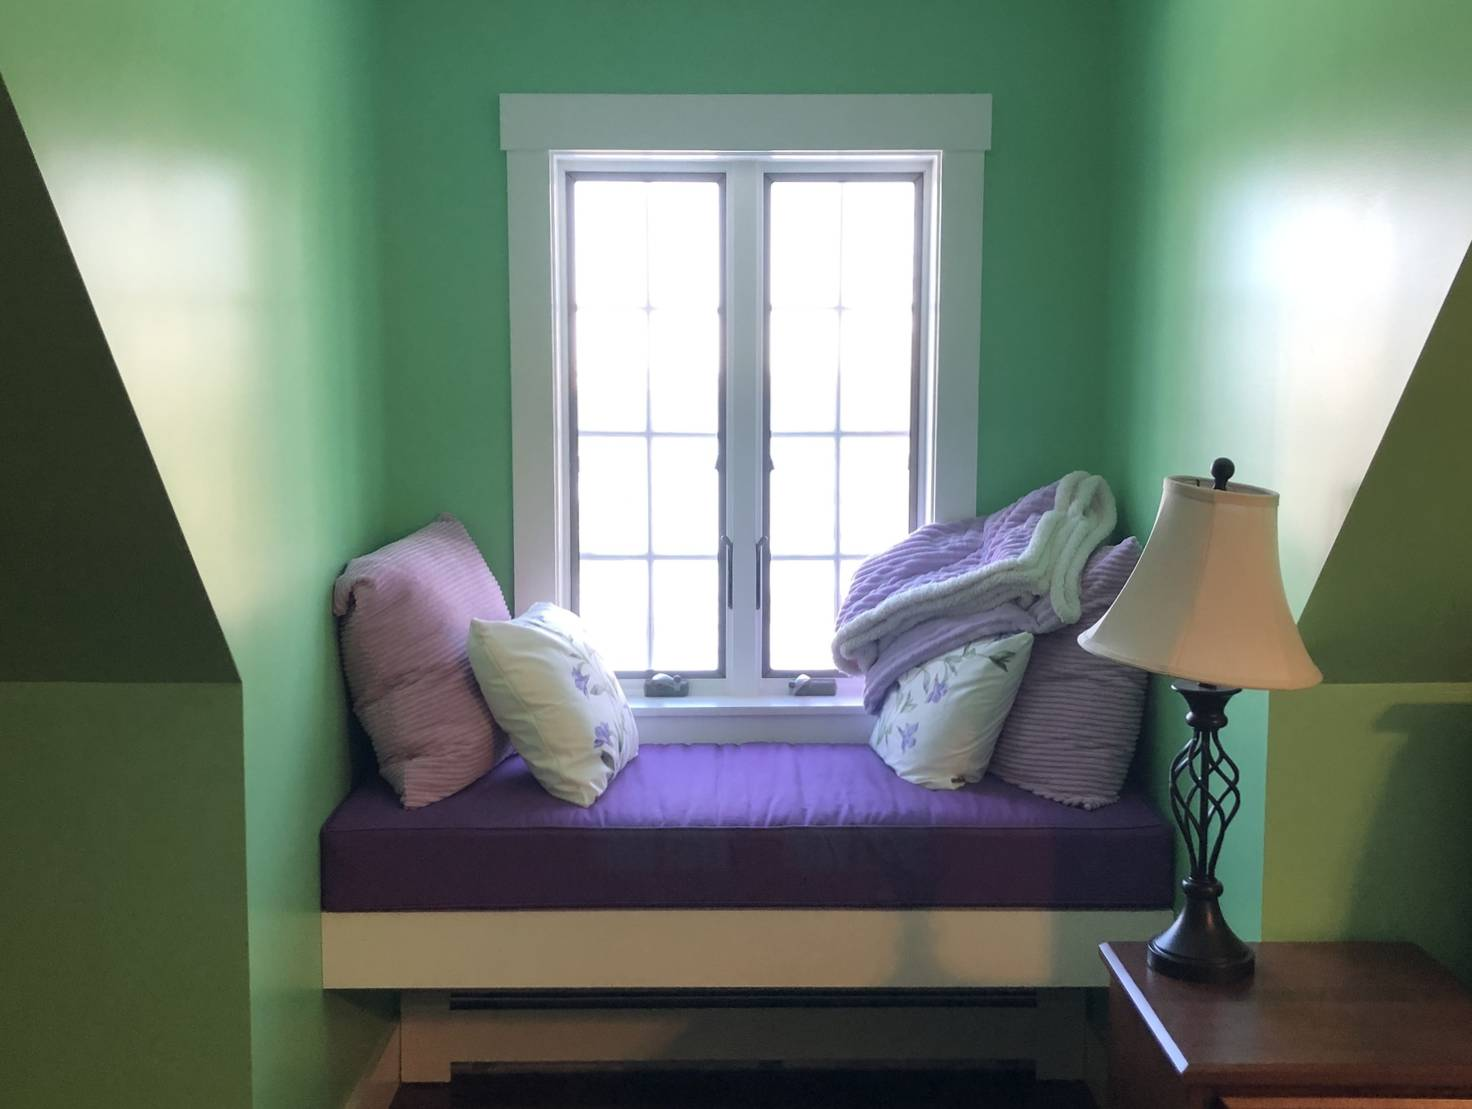 a cushioned window seat in a bedroom dormer window